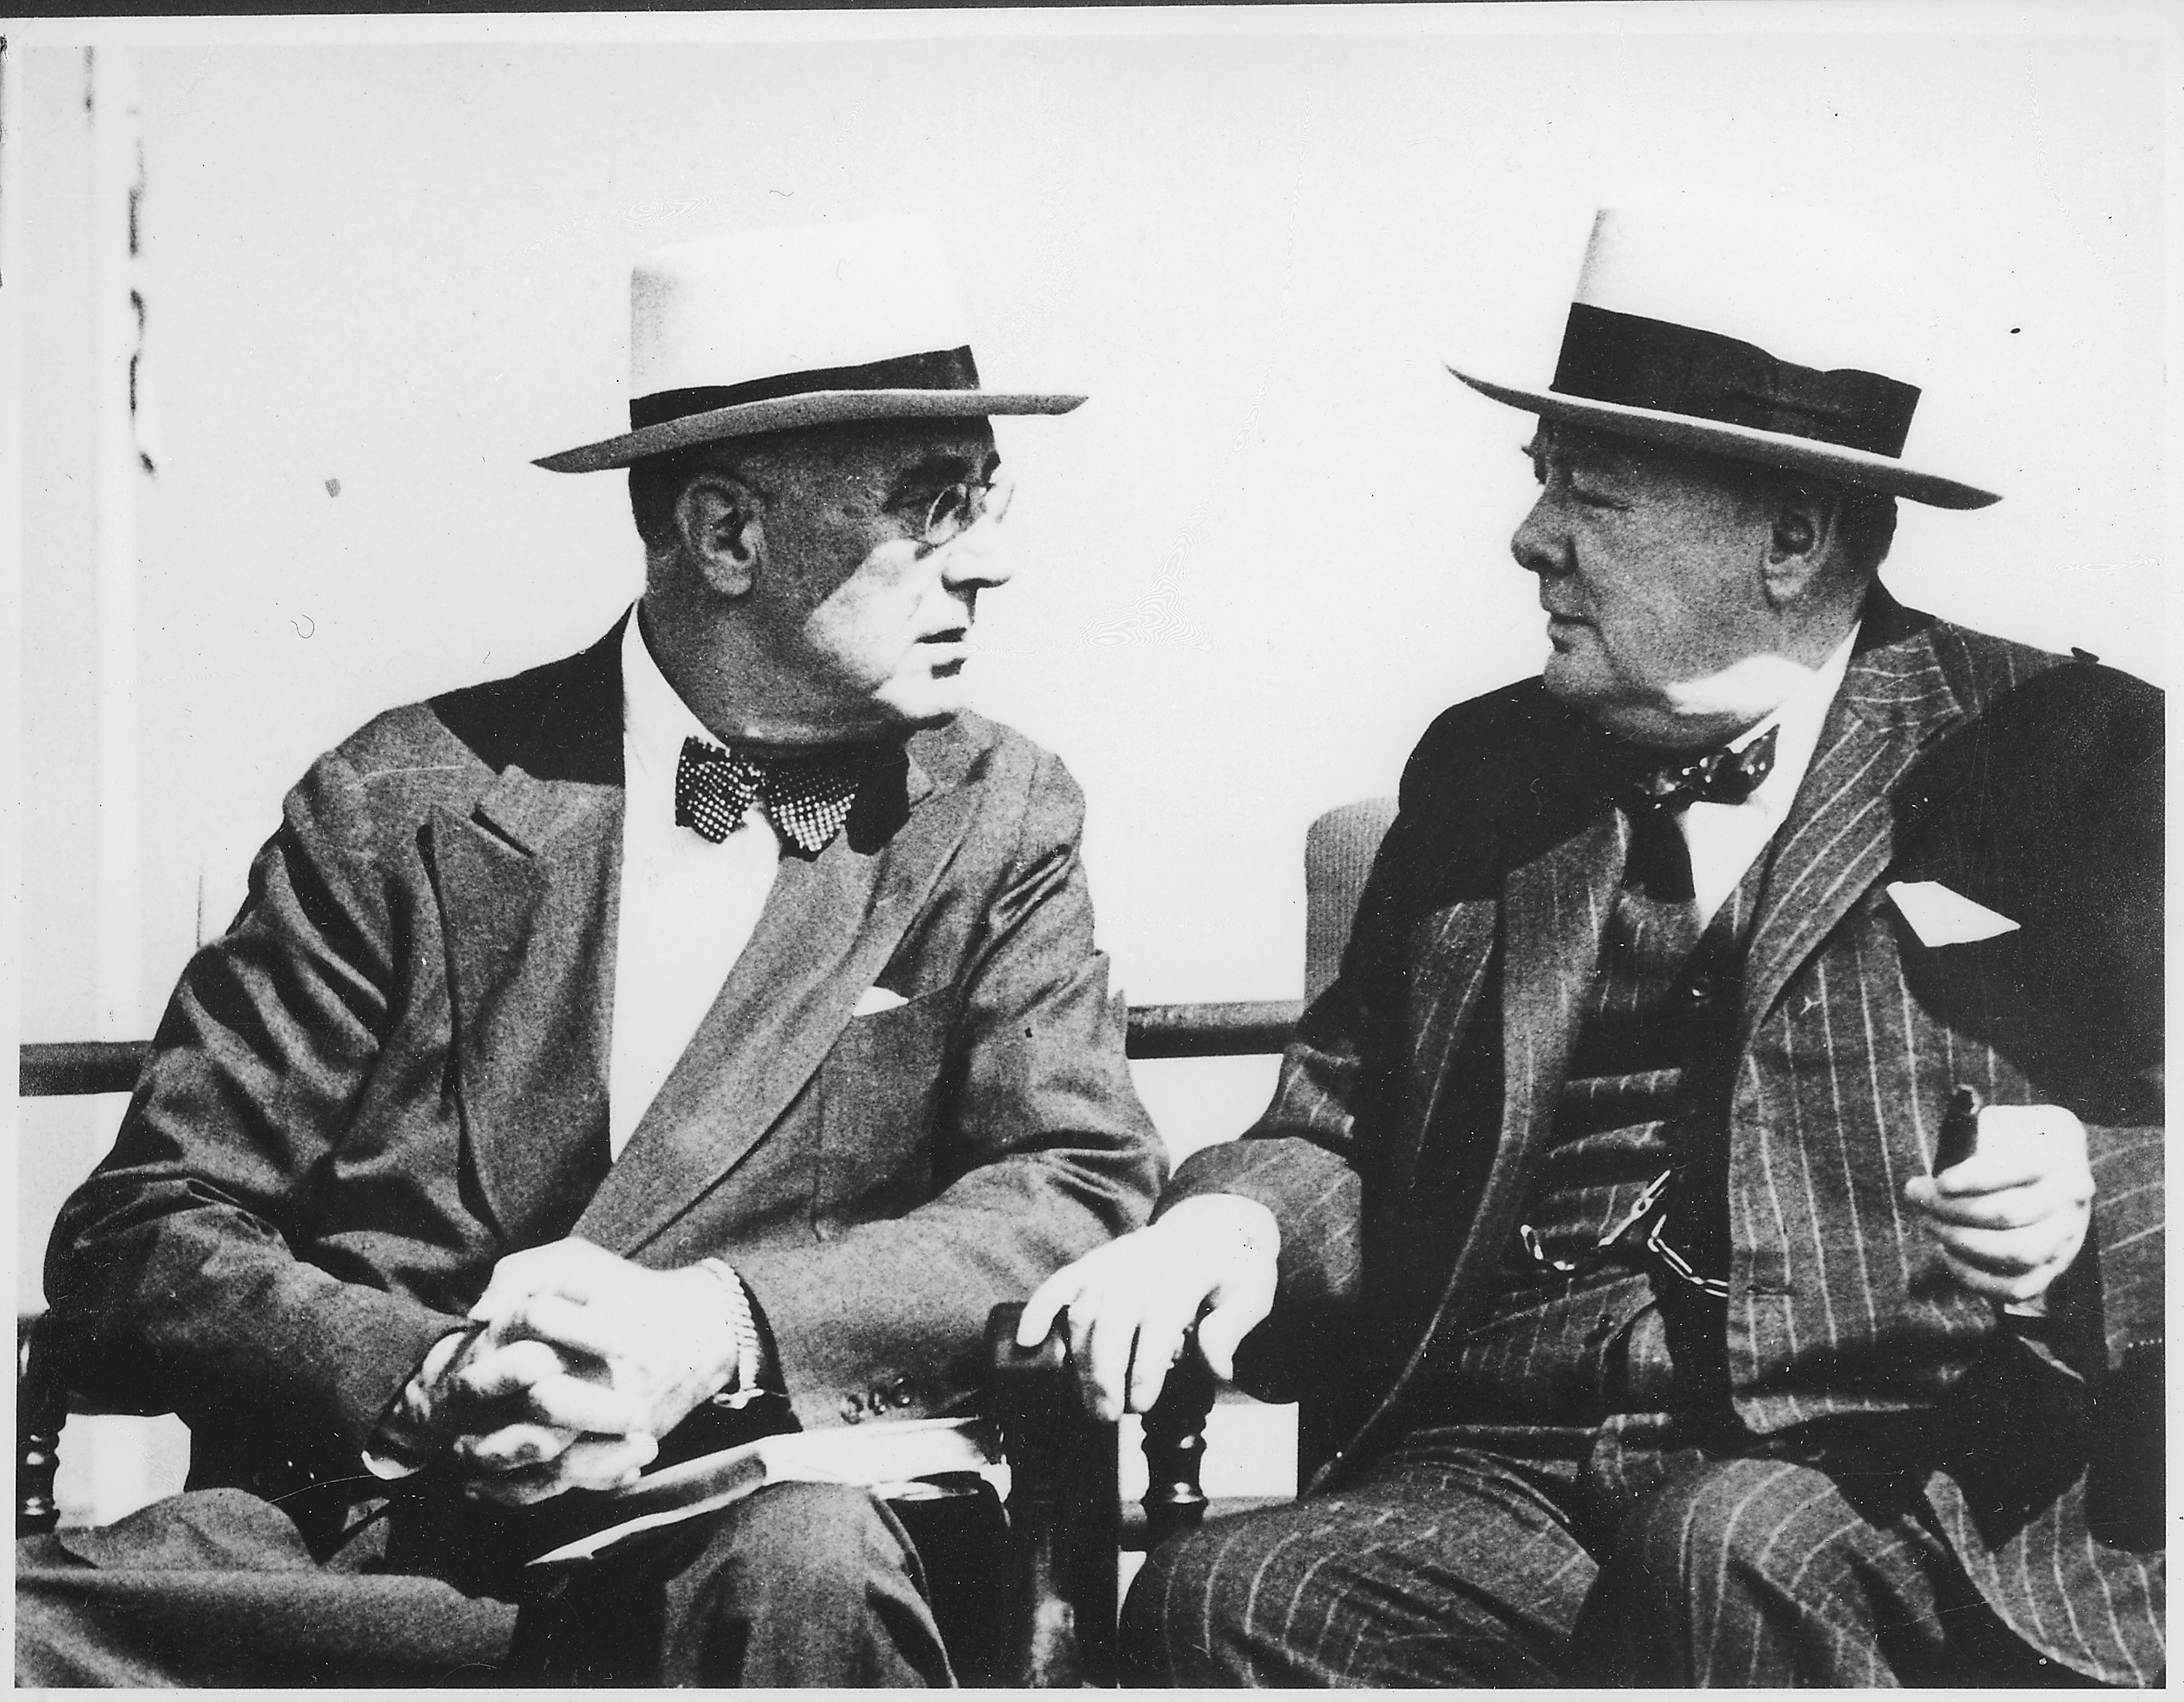 http://upload.wikimedia.org/wikipedia/commons/6/6b/Franklin_D._Roosevelt_and_Churchill_in_Quebec,_Canada_-_NARA_-_195419.jpg